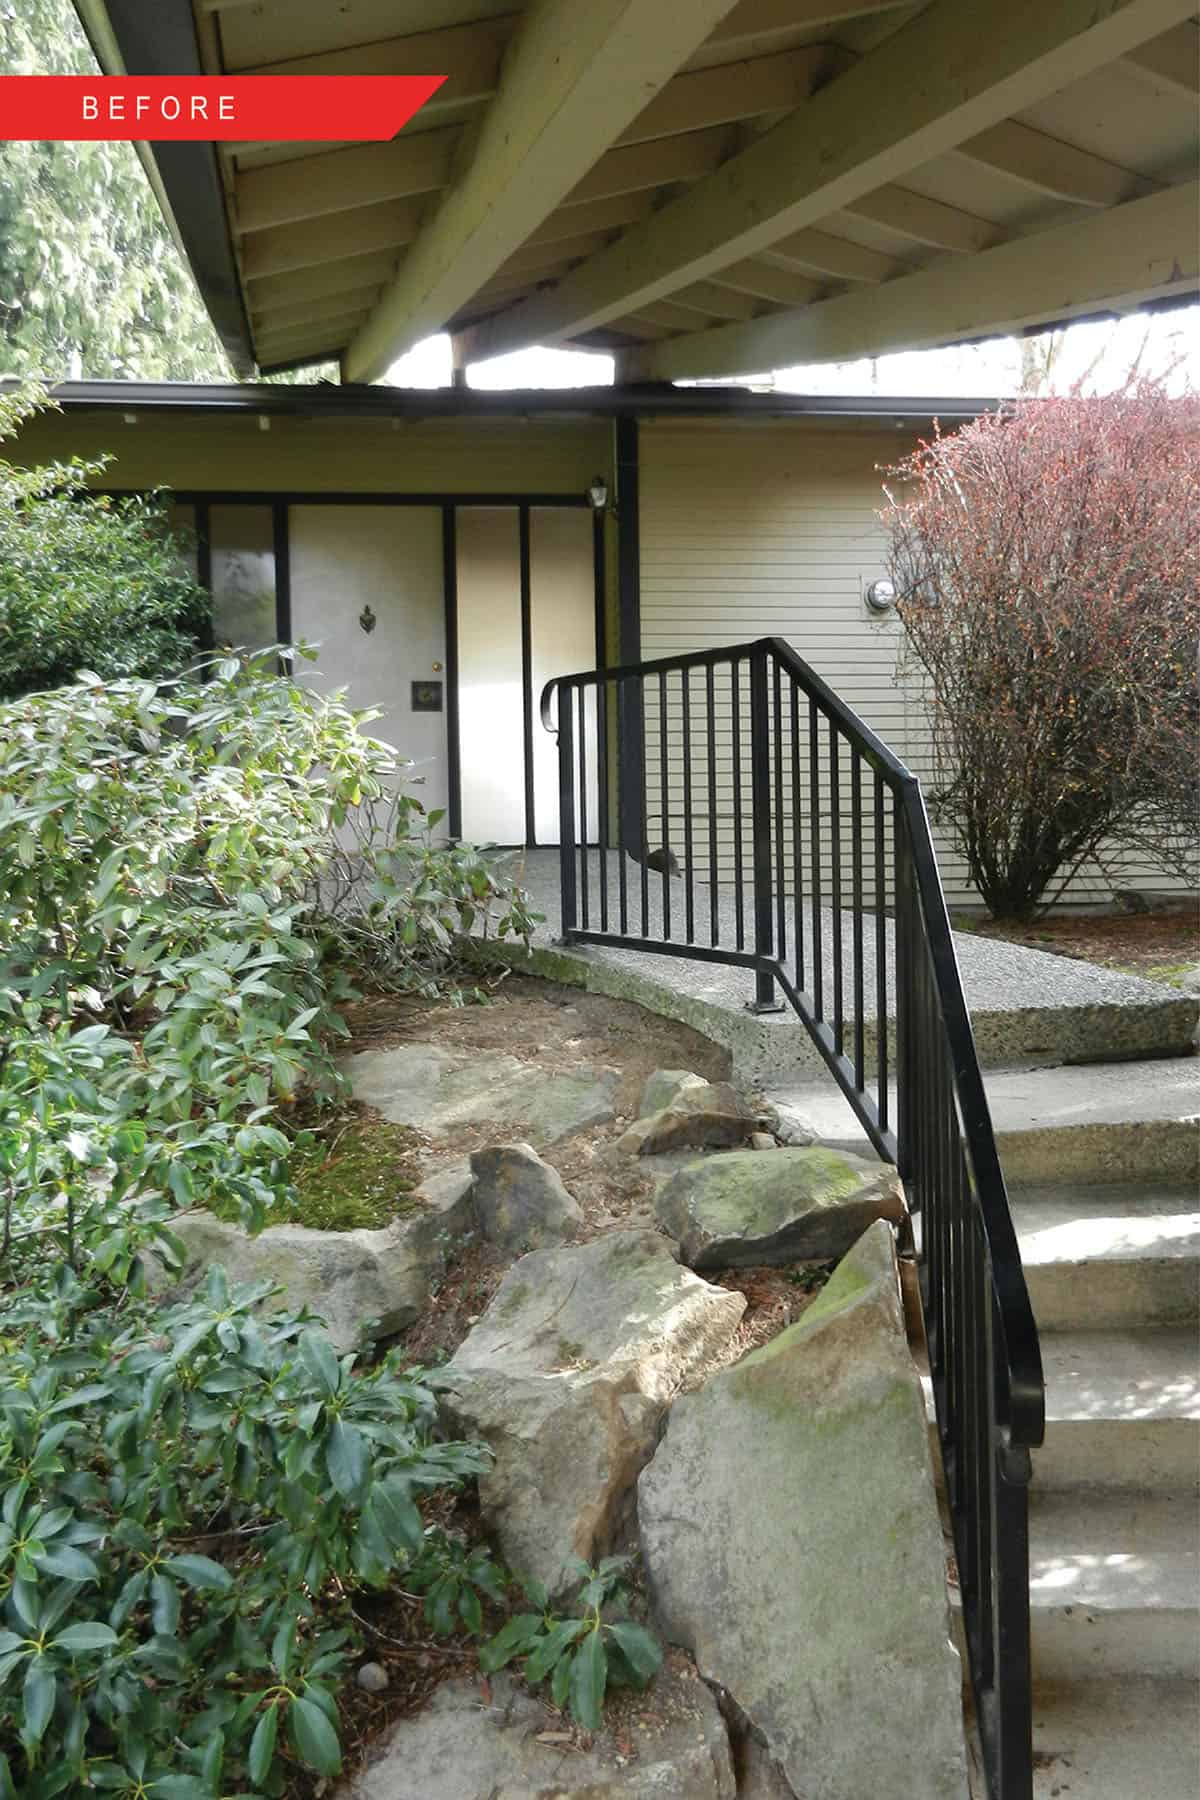 midcentury-modern-home-exterior-before-remodel